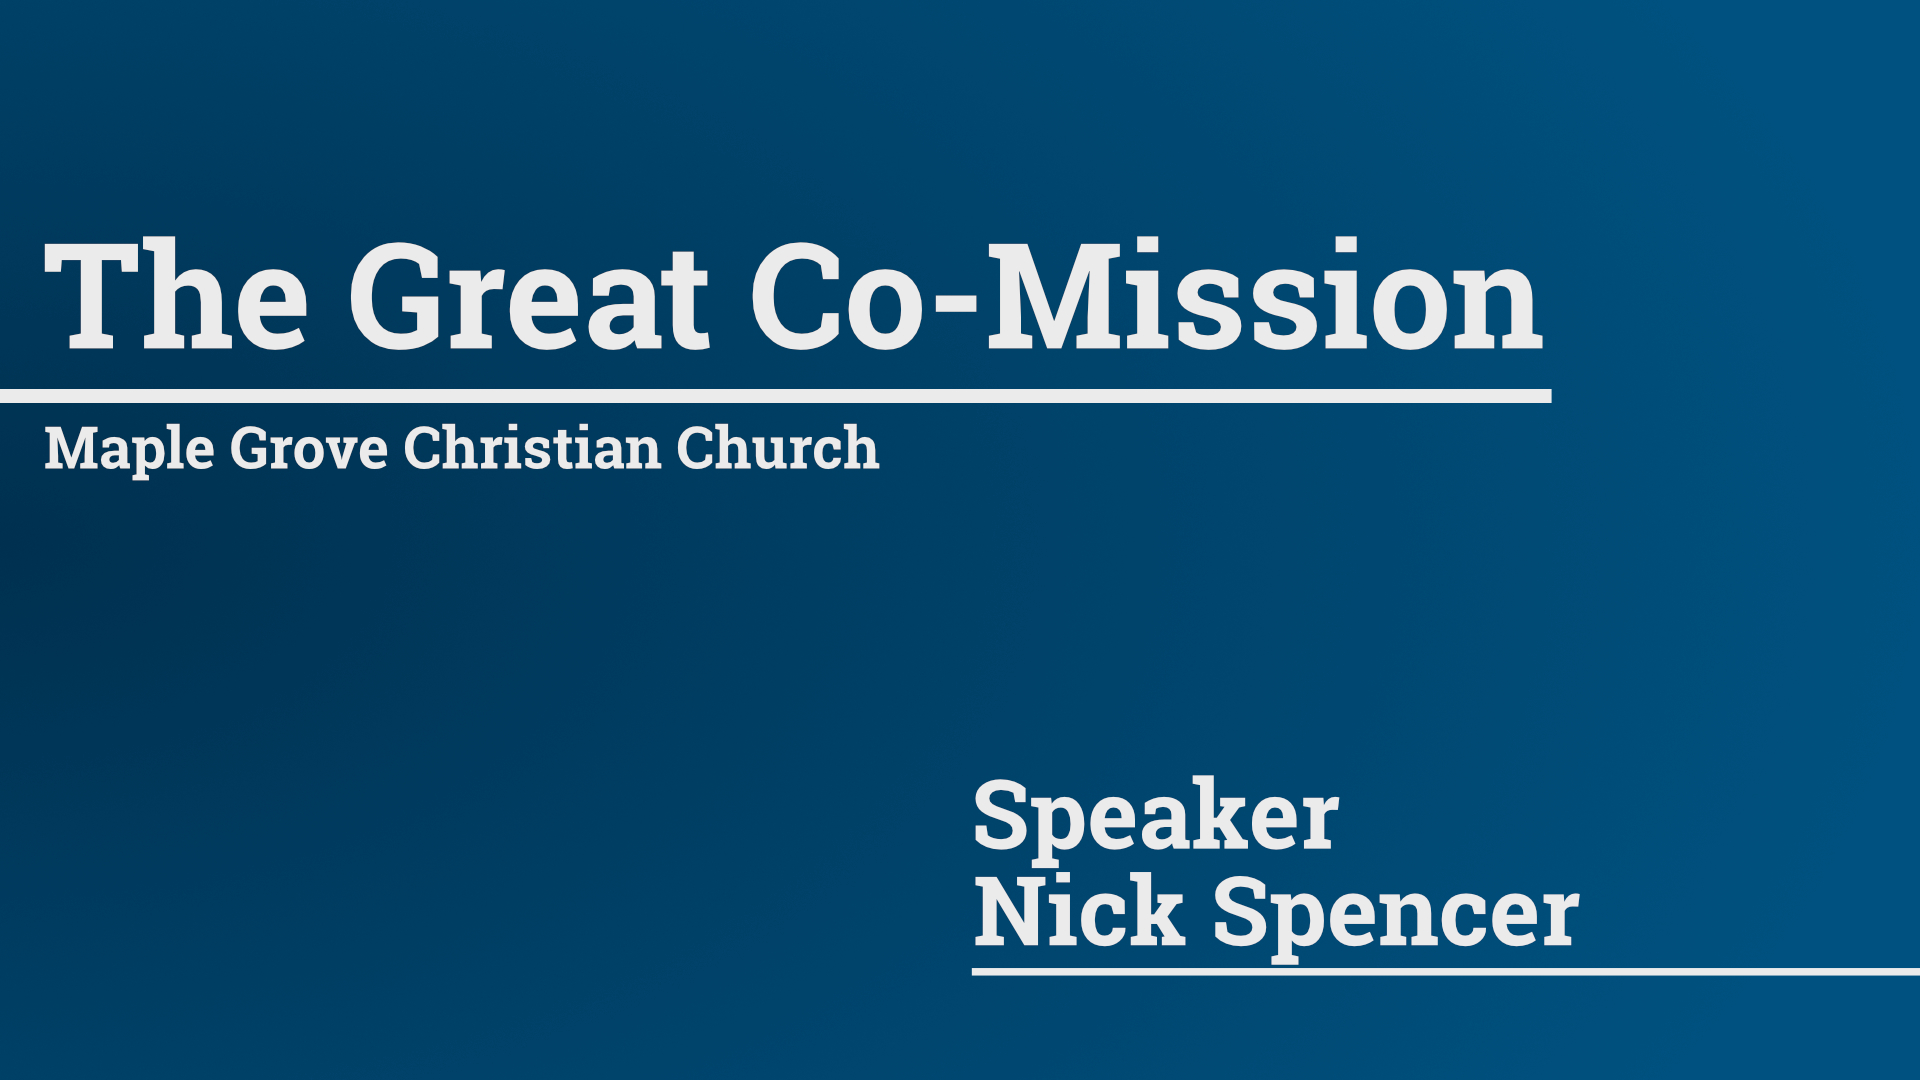 The Great Co-Mission • June 7, 2015